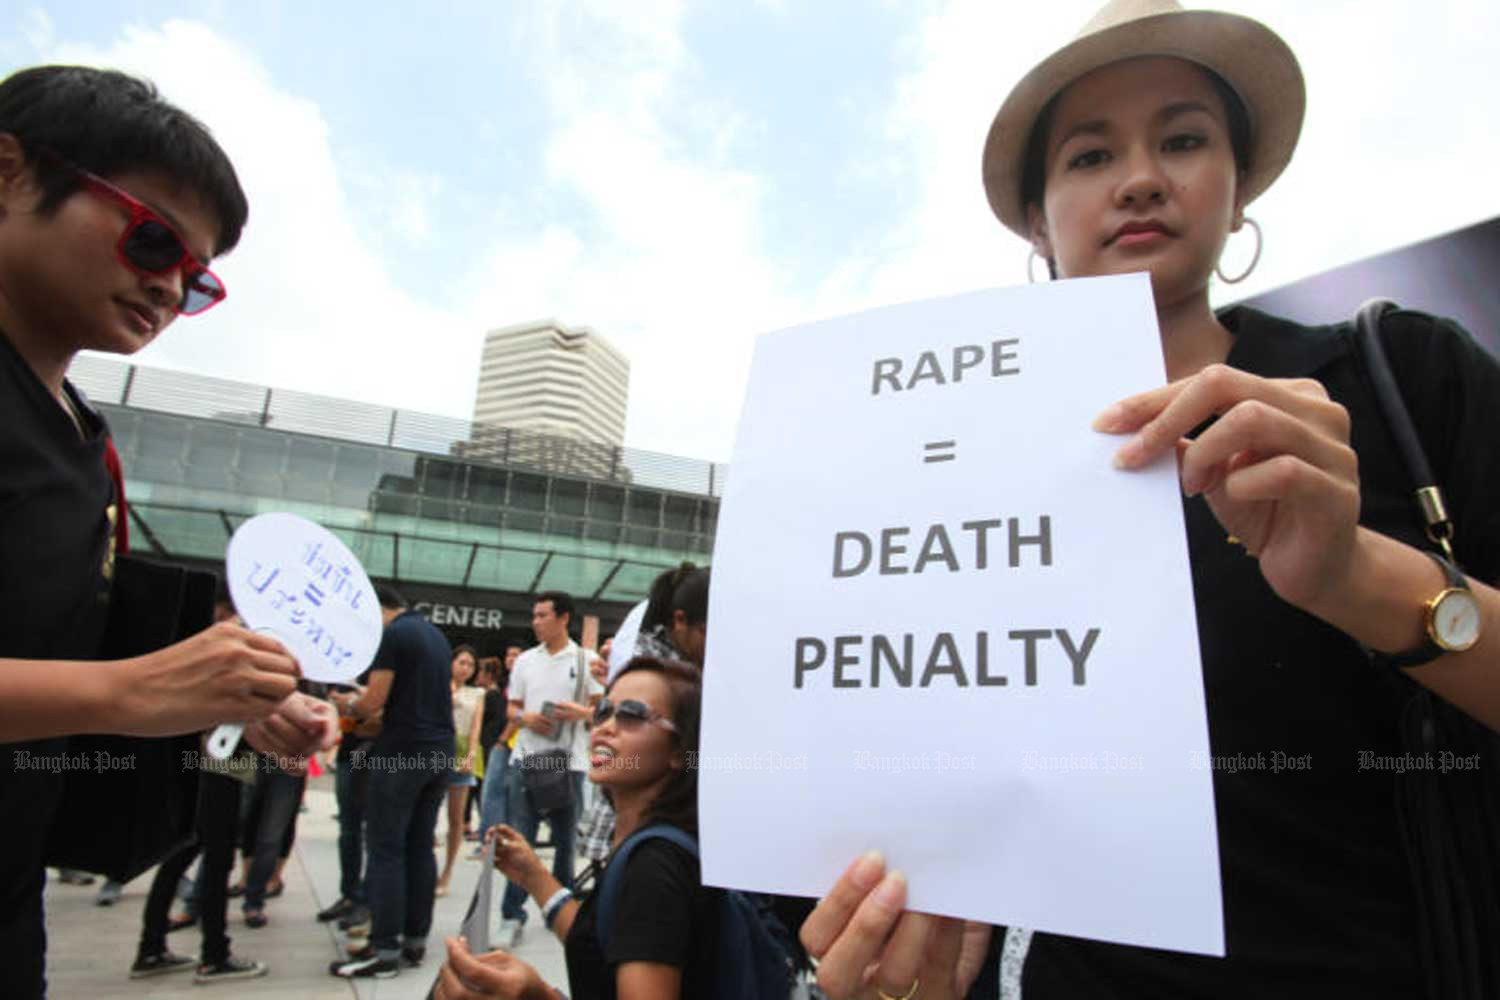 Activists rally in Bangkok in 2014 to urge for death penalty on rapists. (File photo by Apichit Jinakul)